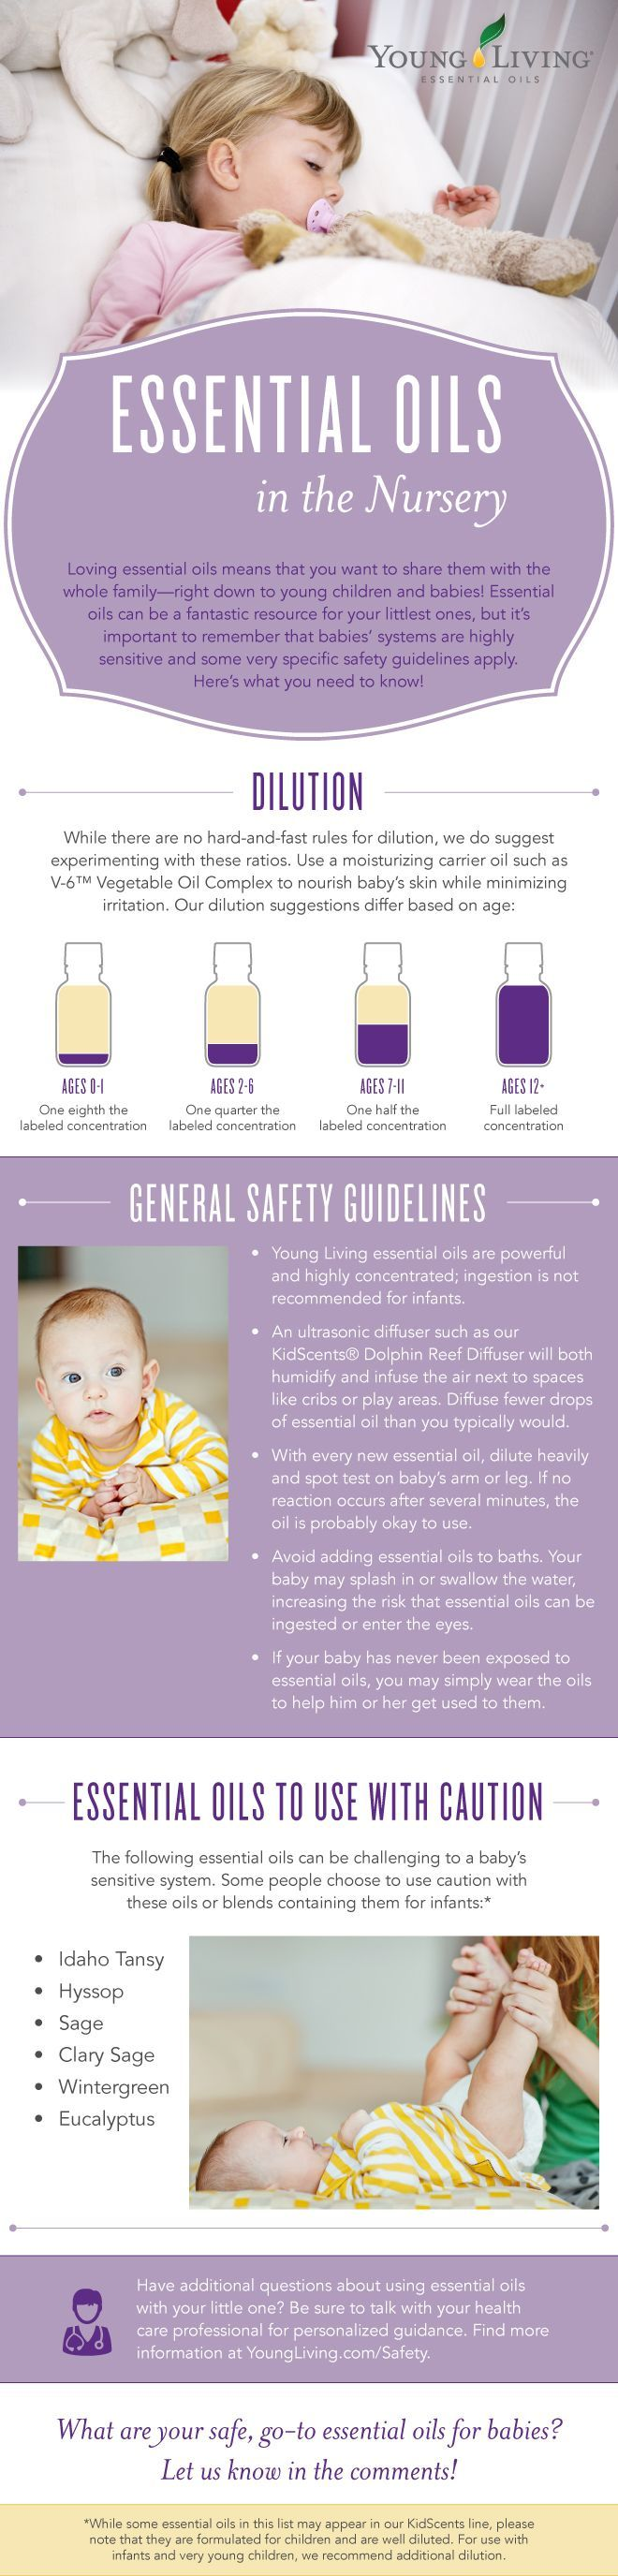 Young Living - Babies and Essential Oils